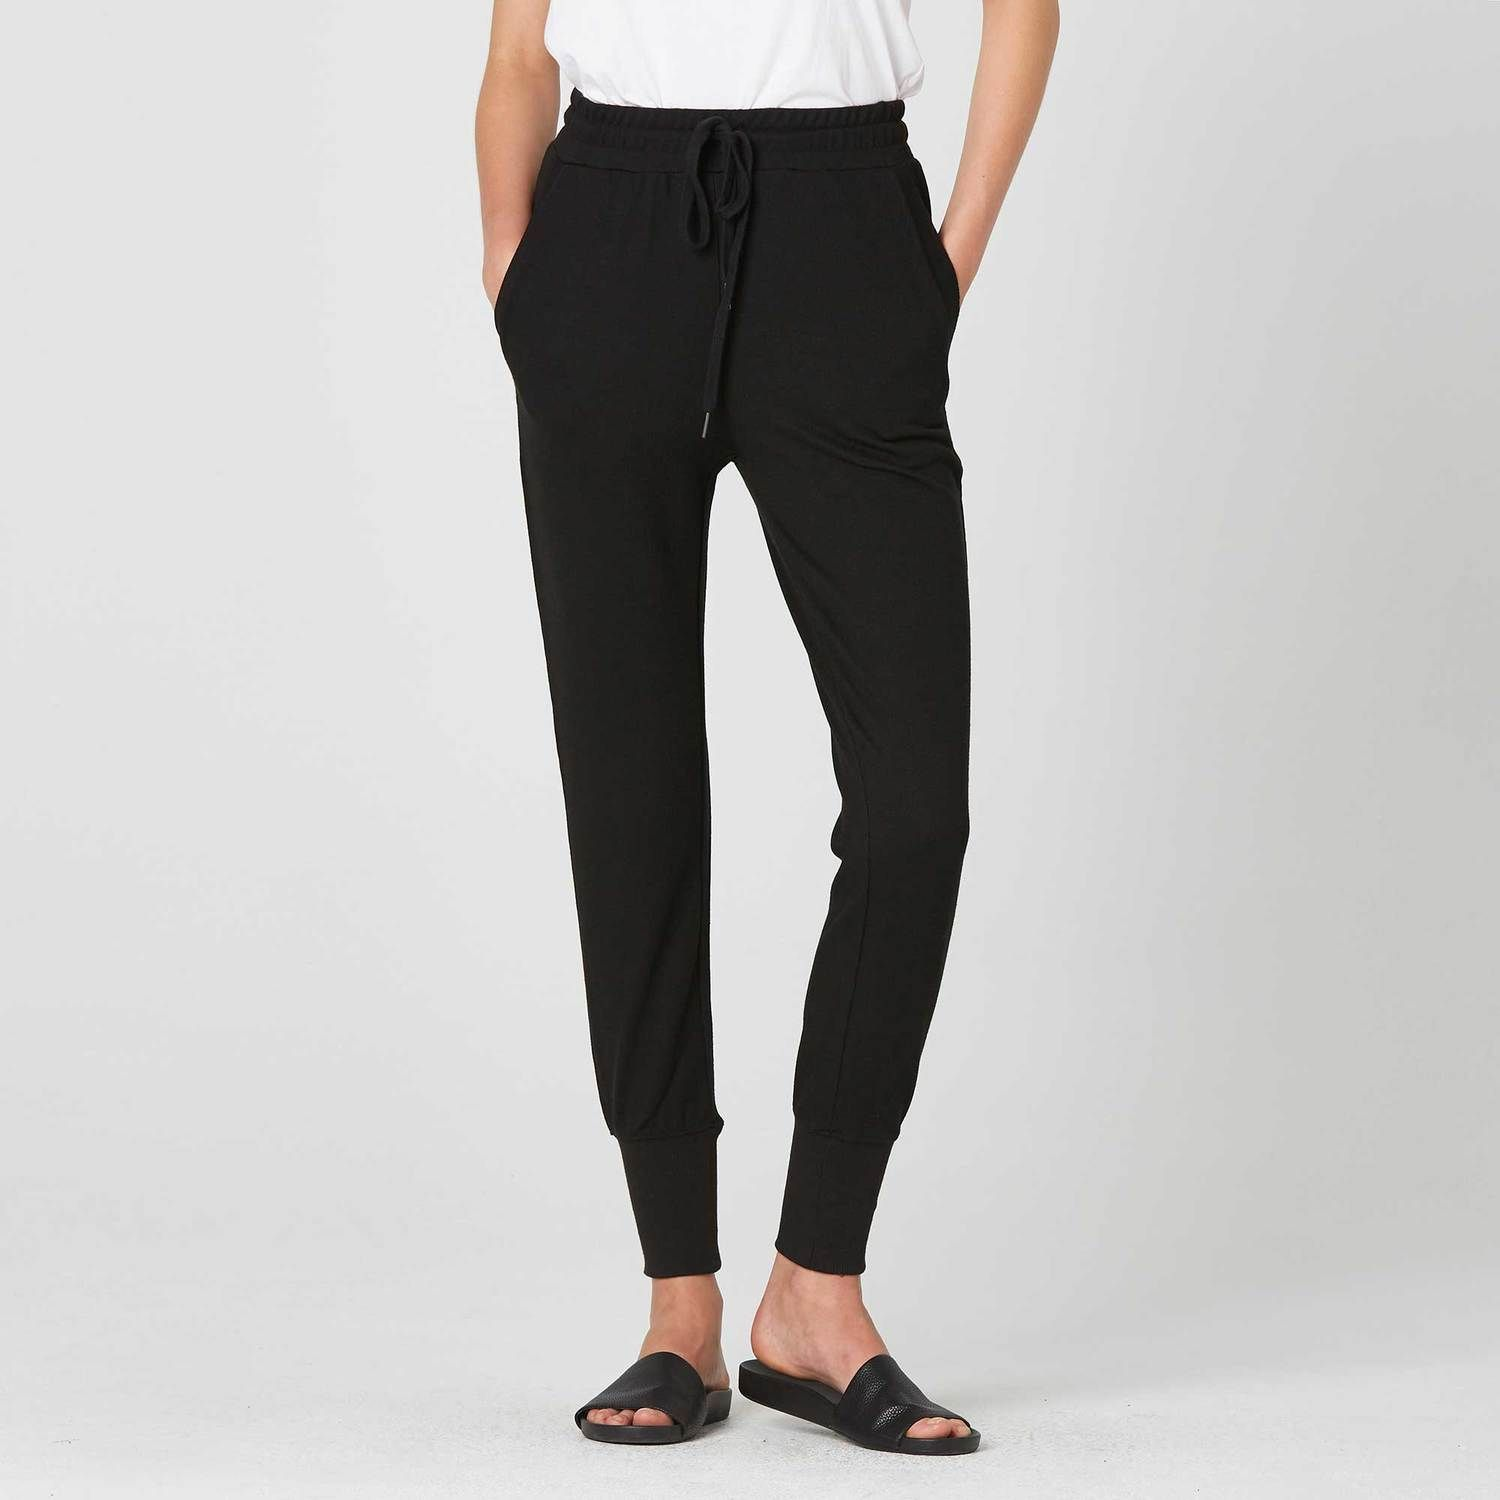 Our Women S Joggers In Black Are The Only Sweatpants You Need For A Casual Night In Or Casual Day Out Made Of A L Joggers Womens Tapered Joggers Jogger Pants